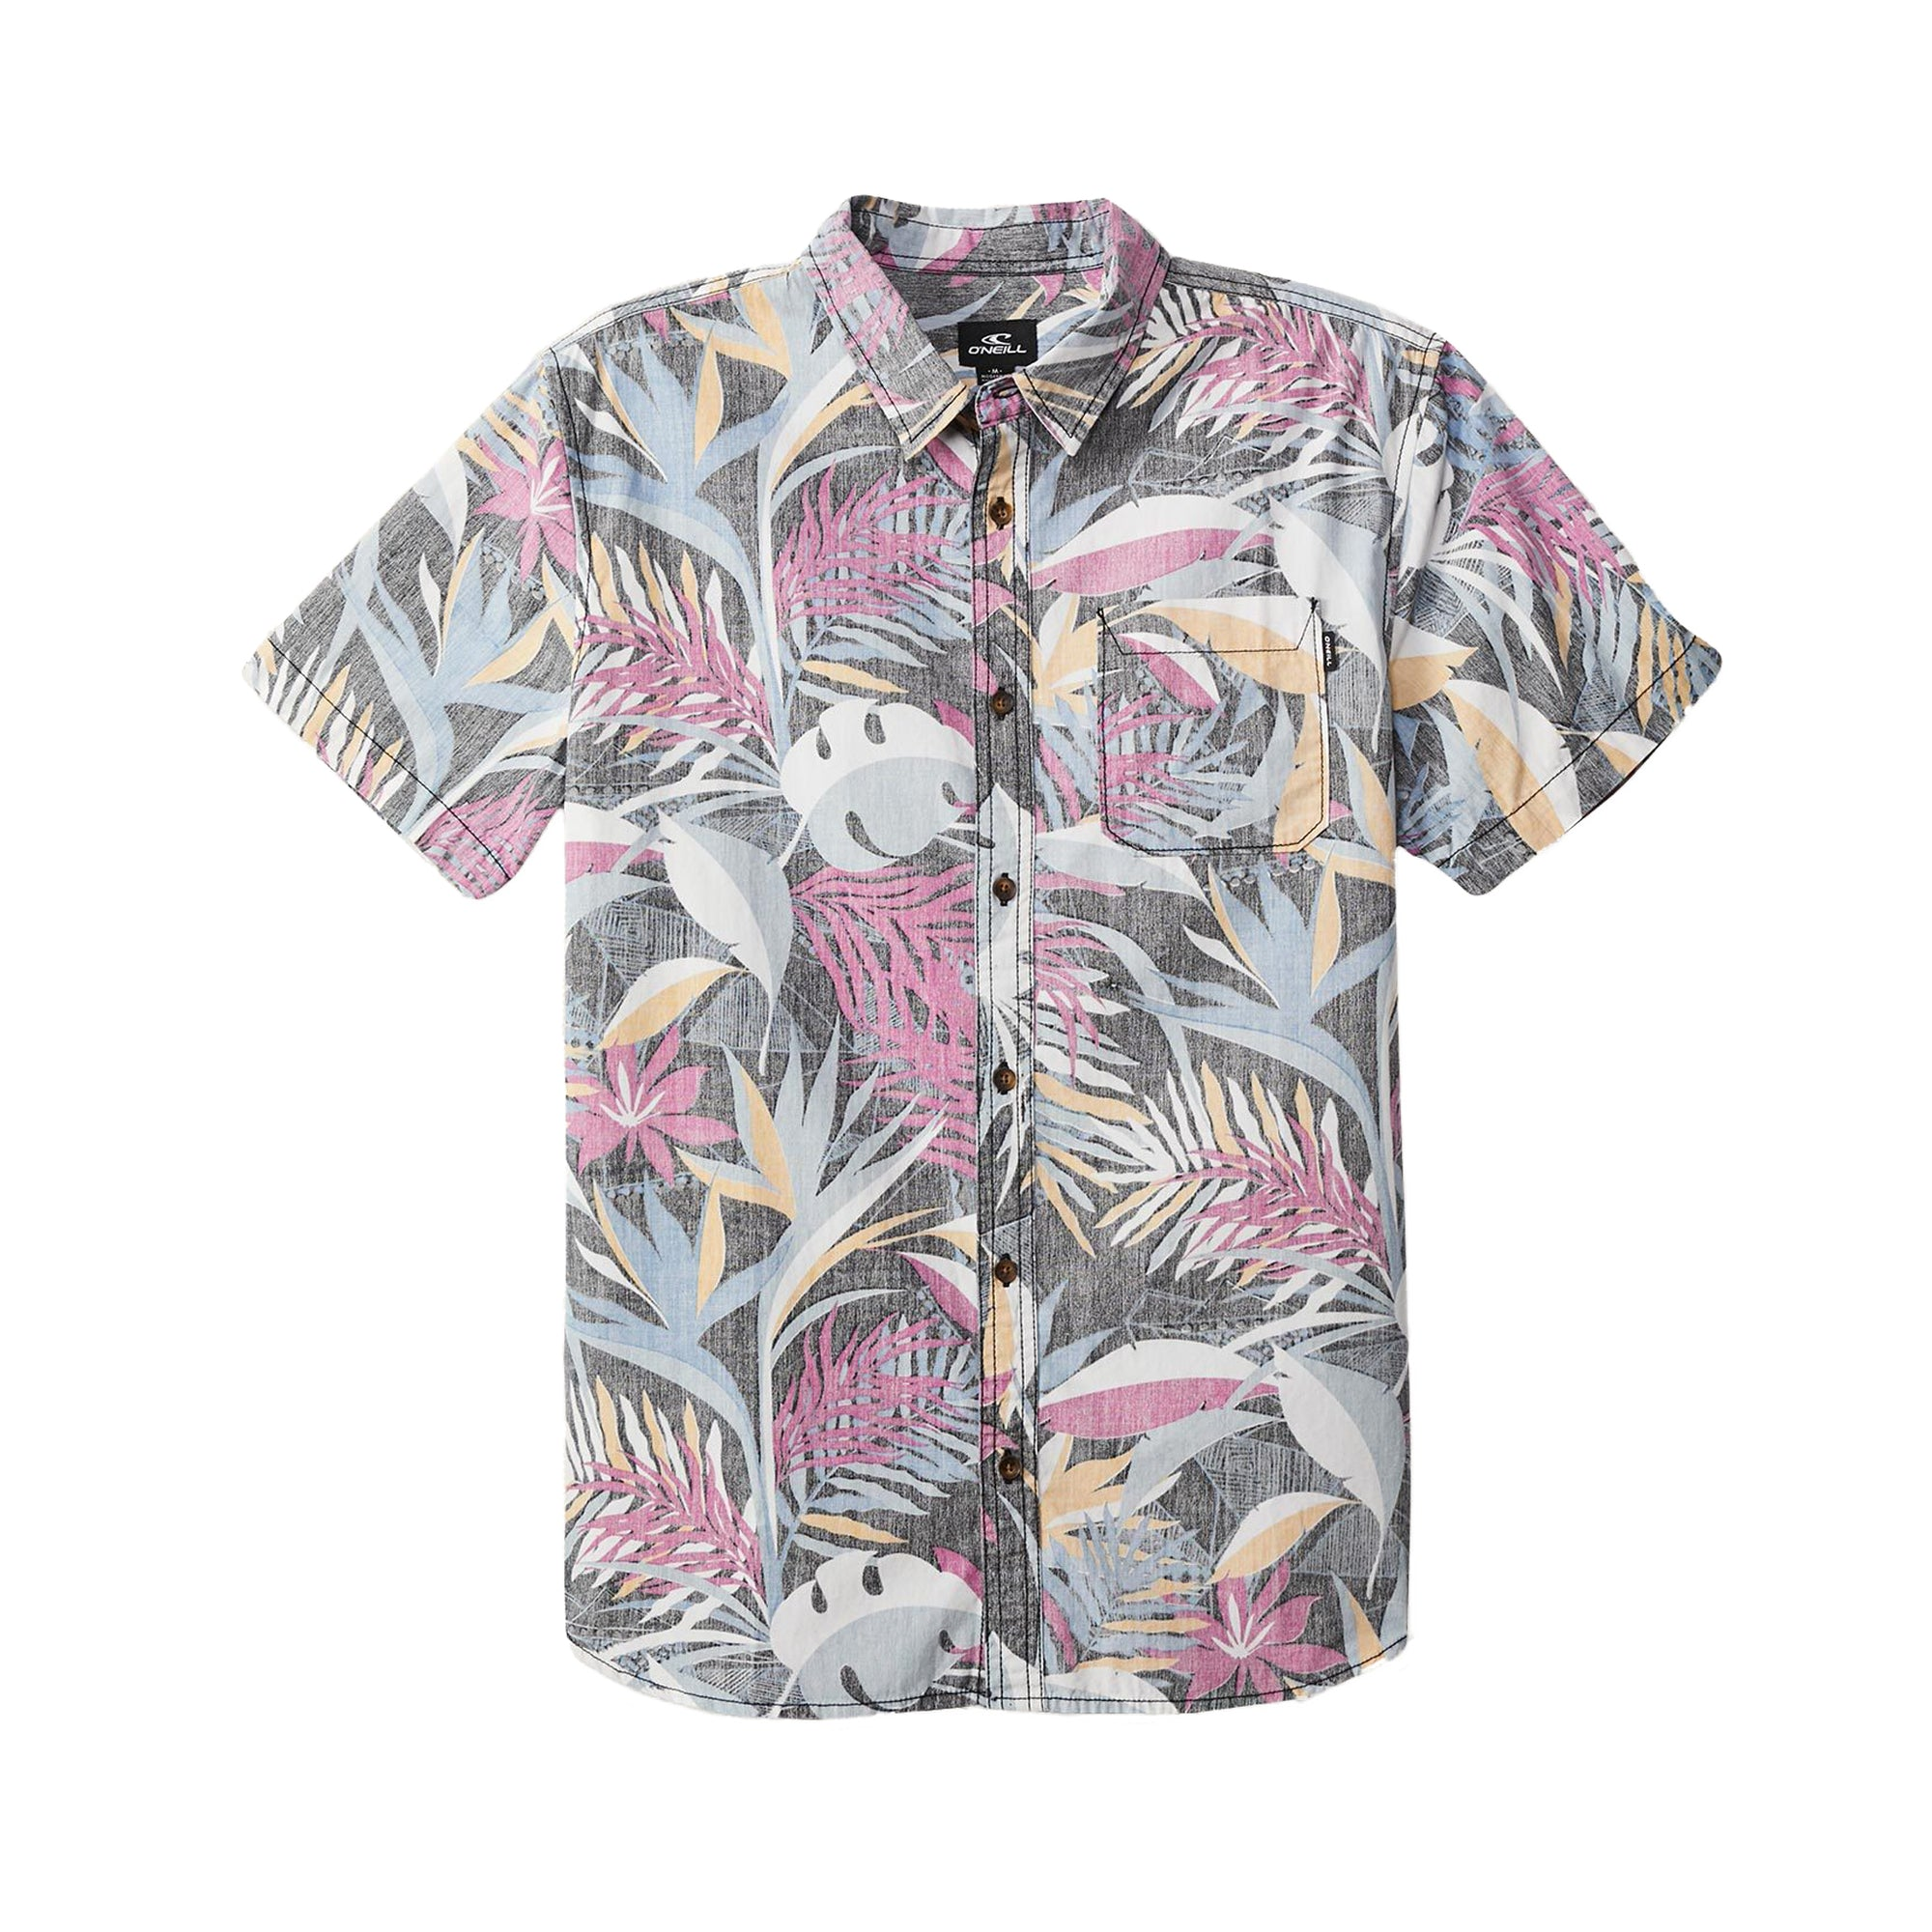 O'Neill Sessions Boys S/S Shirt